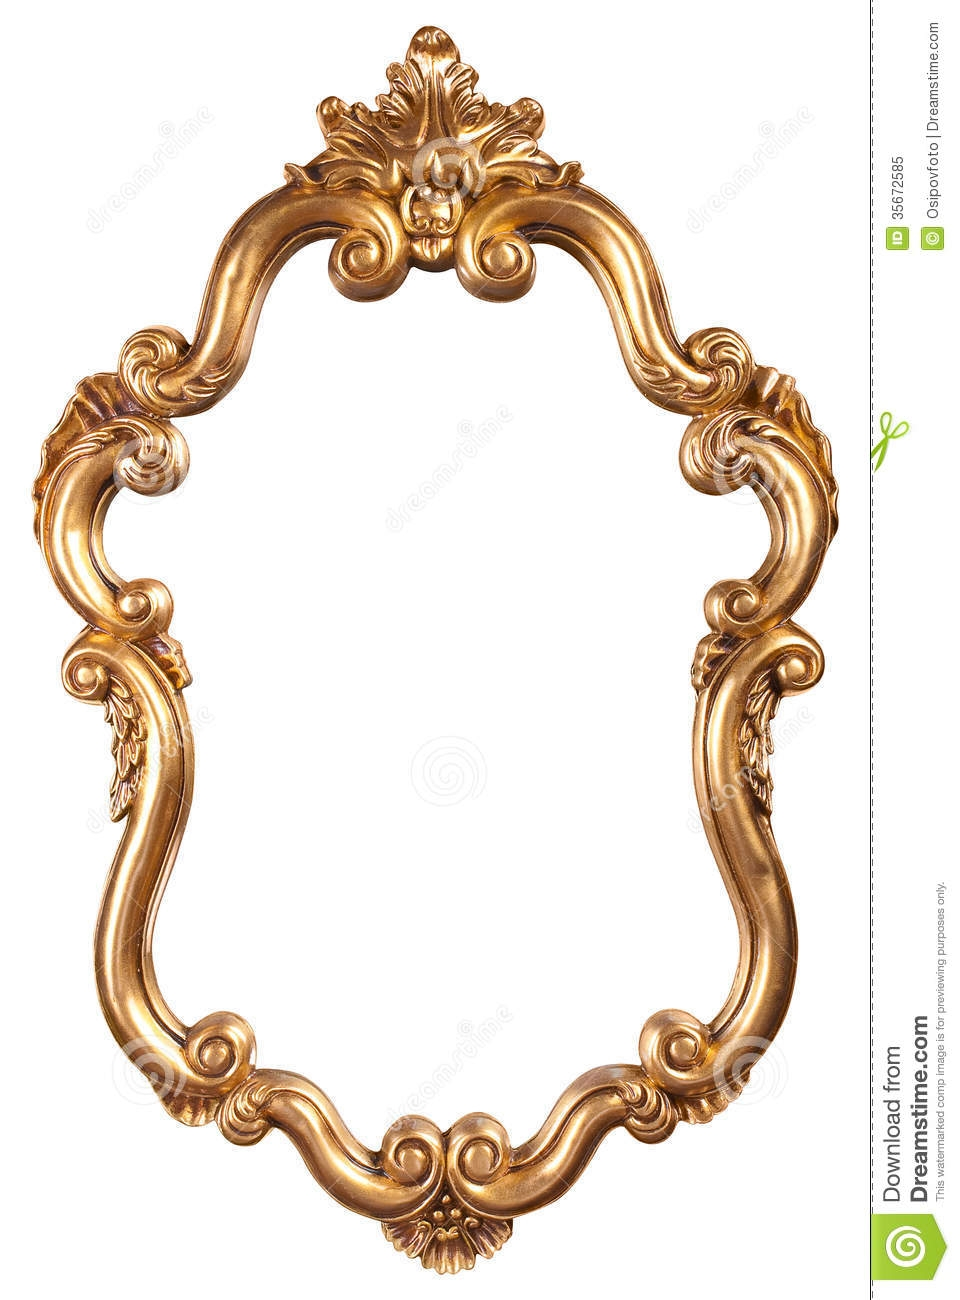 19 Best Images About Mirror On Pinterest For Gold Antique Mirrors (Image 1 of 15)